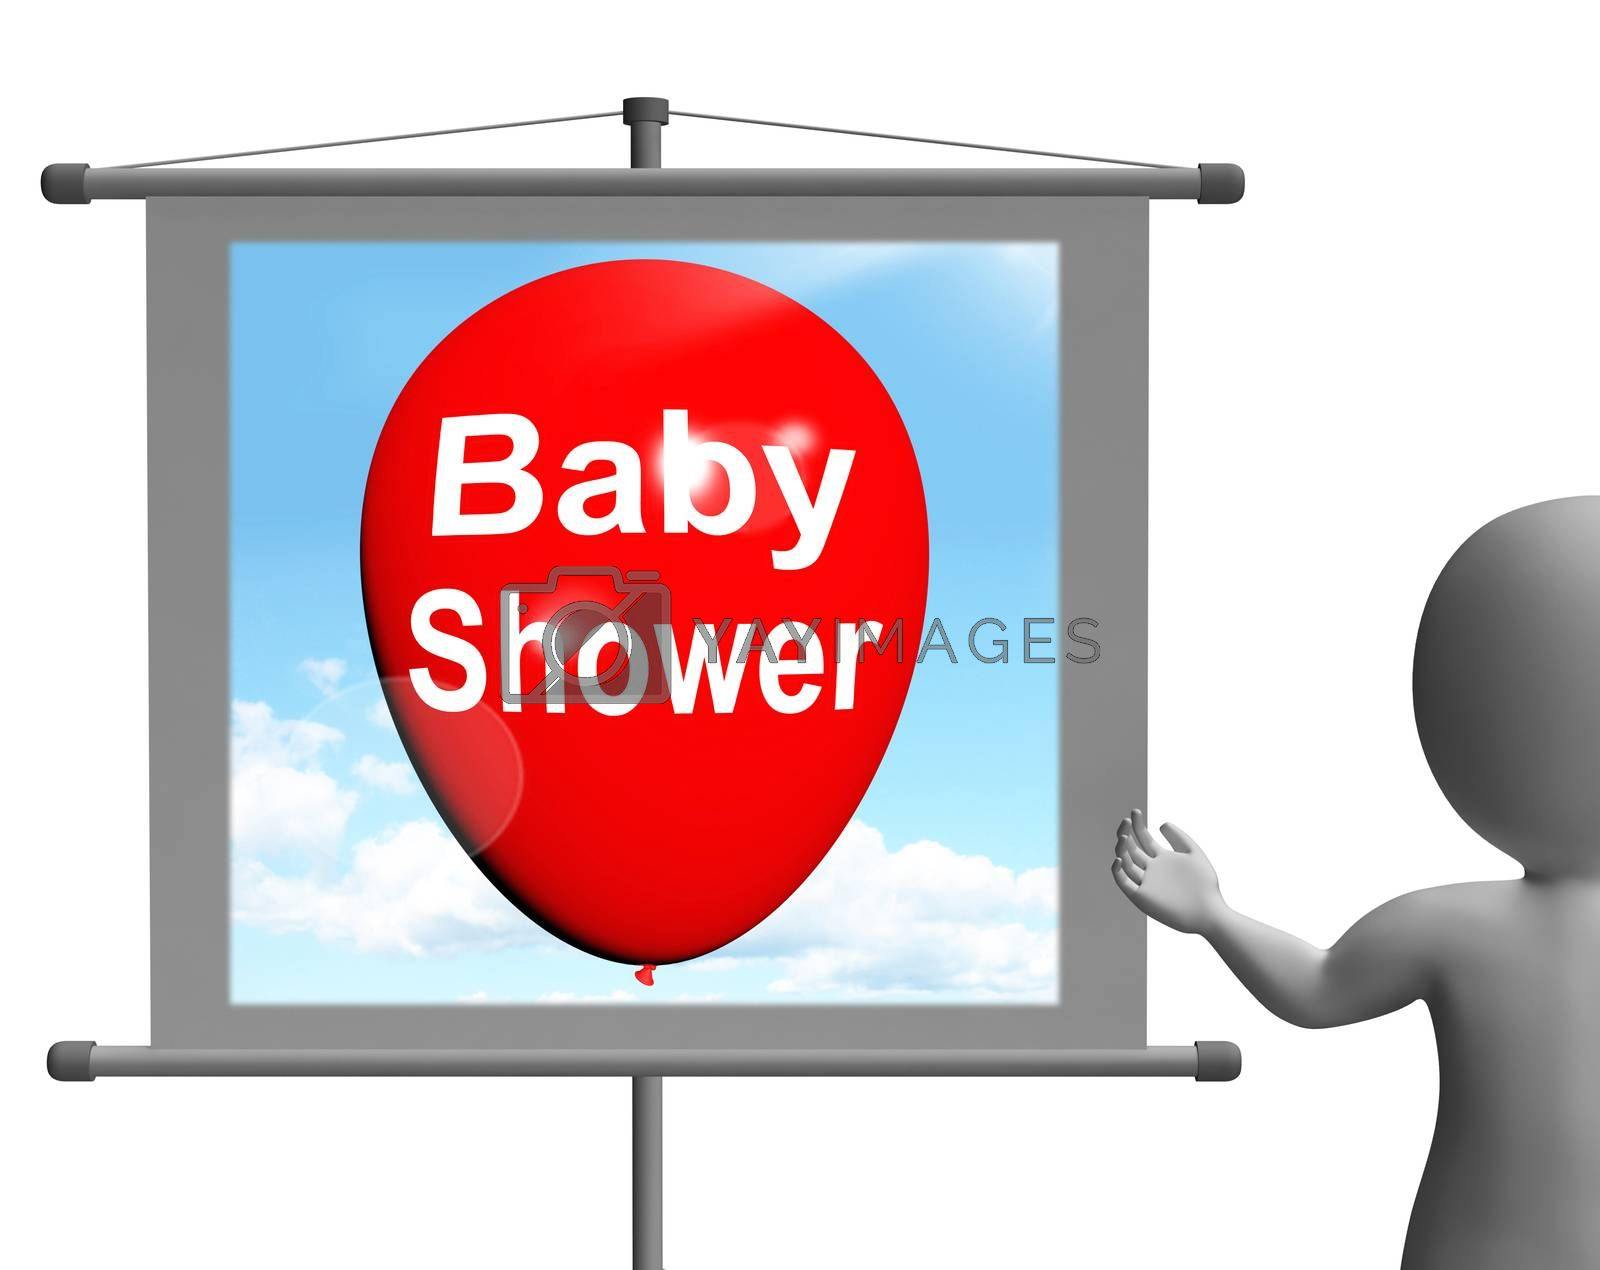 Baby Shower Sign Shows Cheerful Festivities and Parties by stuartmiles